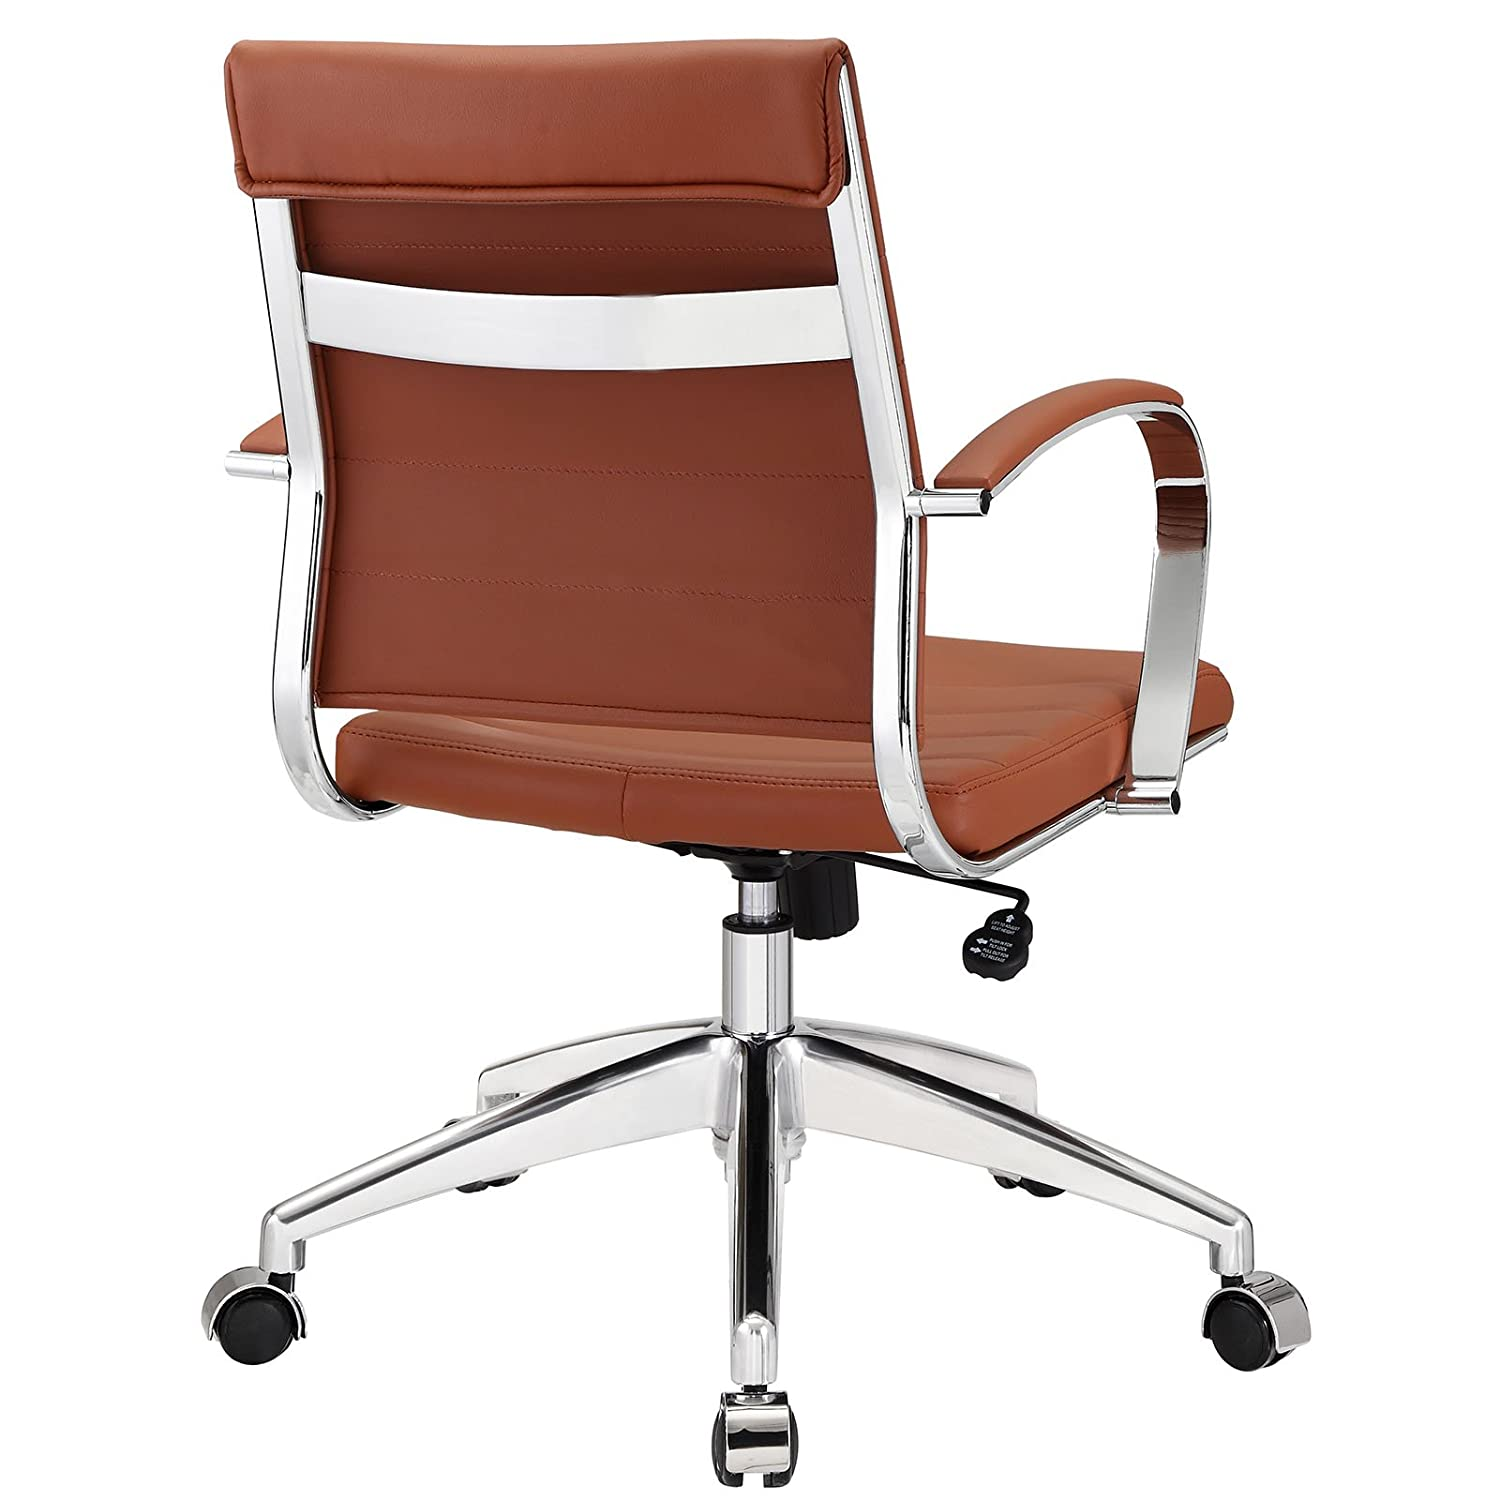 Medium back office chair - Amazon Com Modway Jive Ribbed Mid Back Executive Office Chair Terracotta Vinyl Kitchen Dining